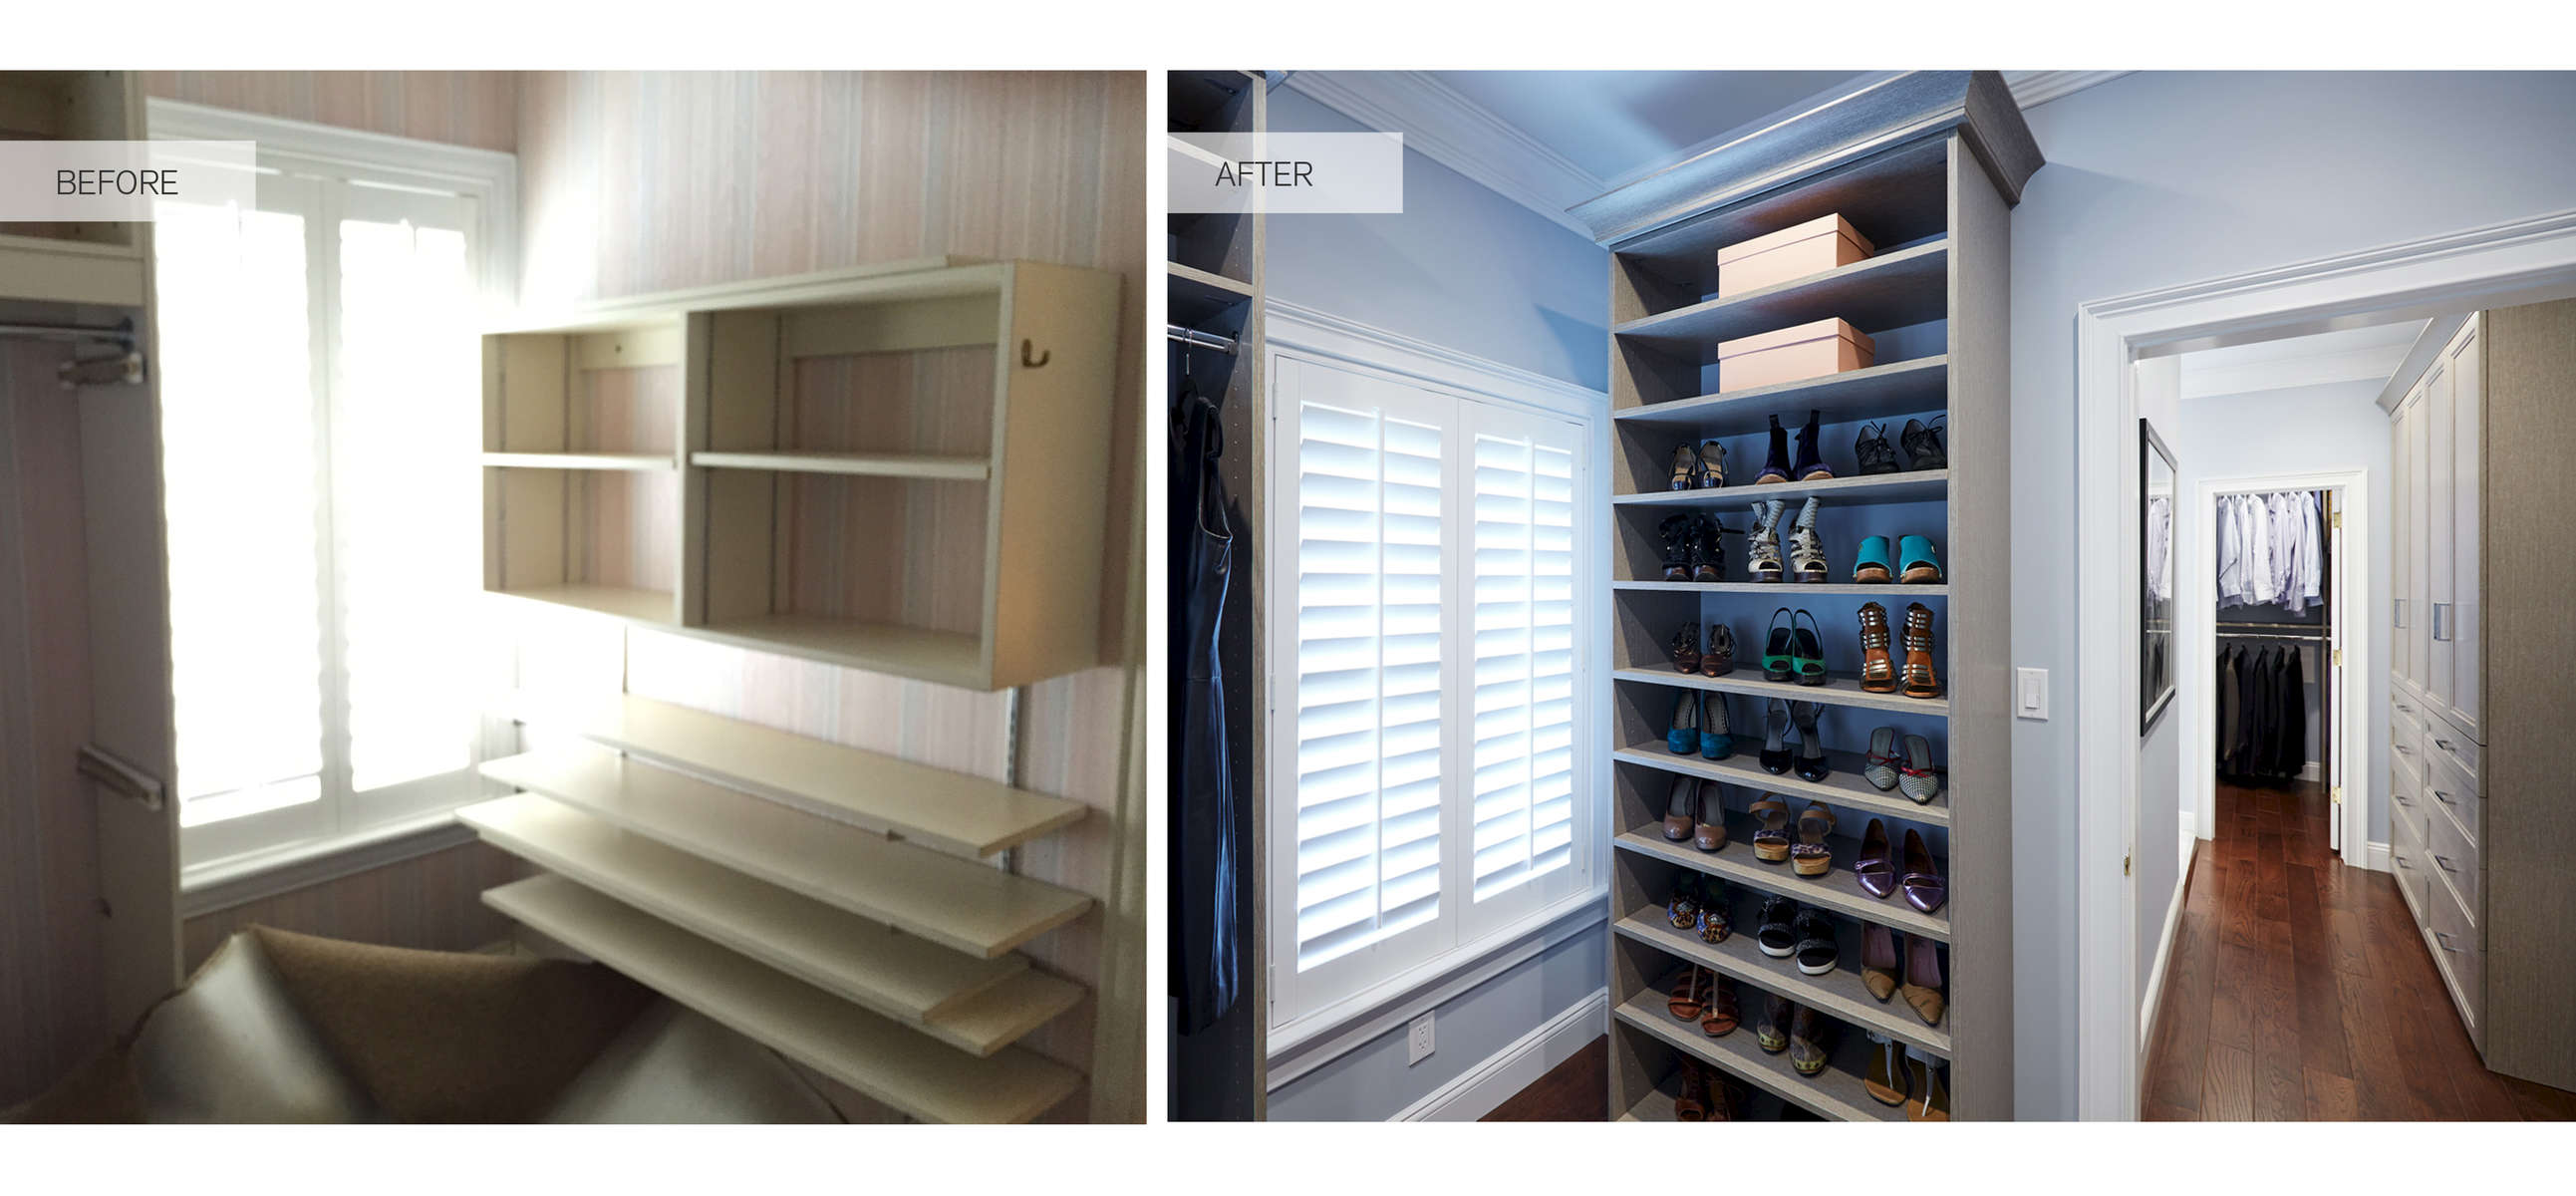 Reconfiguring the floor plan to better utilize an adjacent dressing area connecting the master bathroom to the master bedroom that bridges his and hers dedicated walk in closets. A more functional and stylish closet organizational system was installed the both closets.